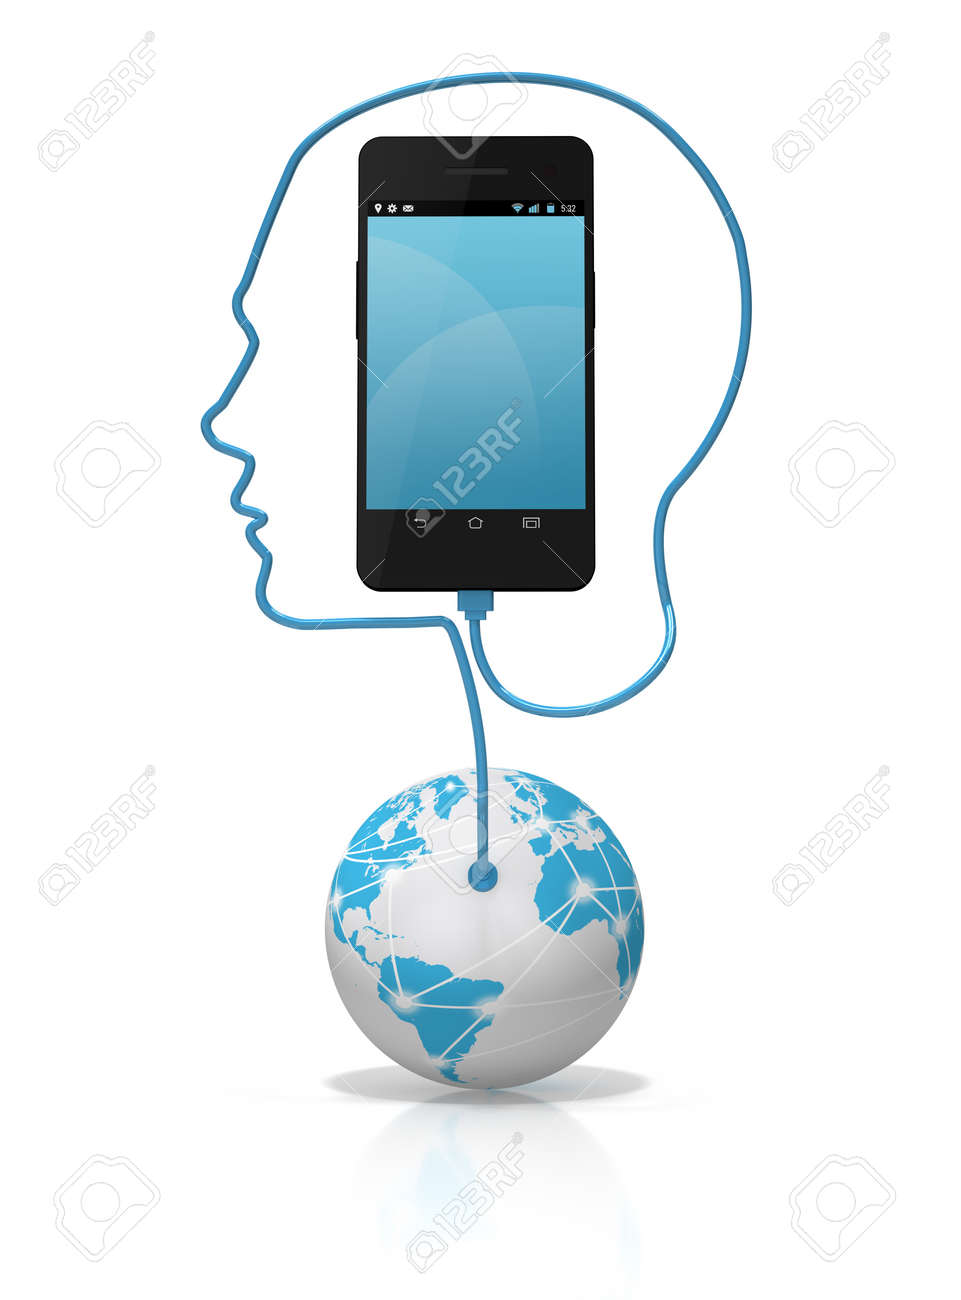 A global network cable forming the silhouette of a head plugged into a smart phone over a white background. Add your own text or icons to the screen. Stock Photo - 17141284